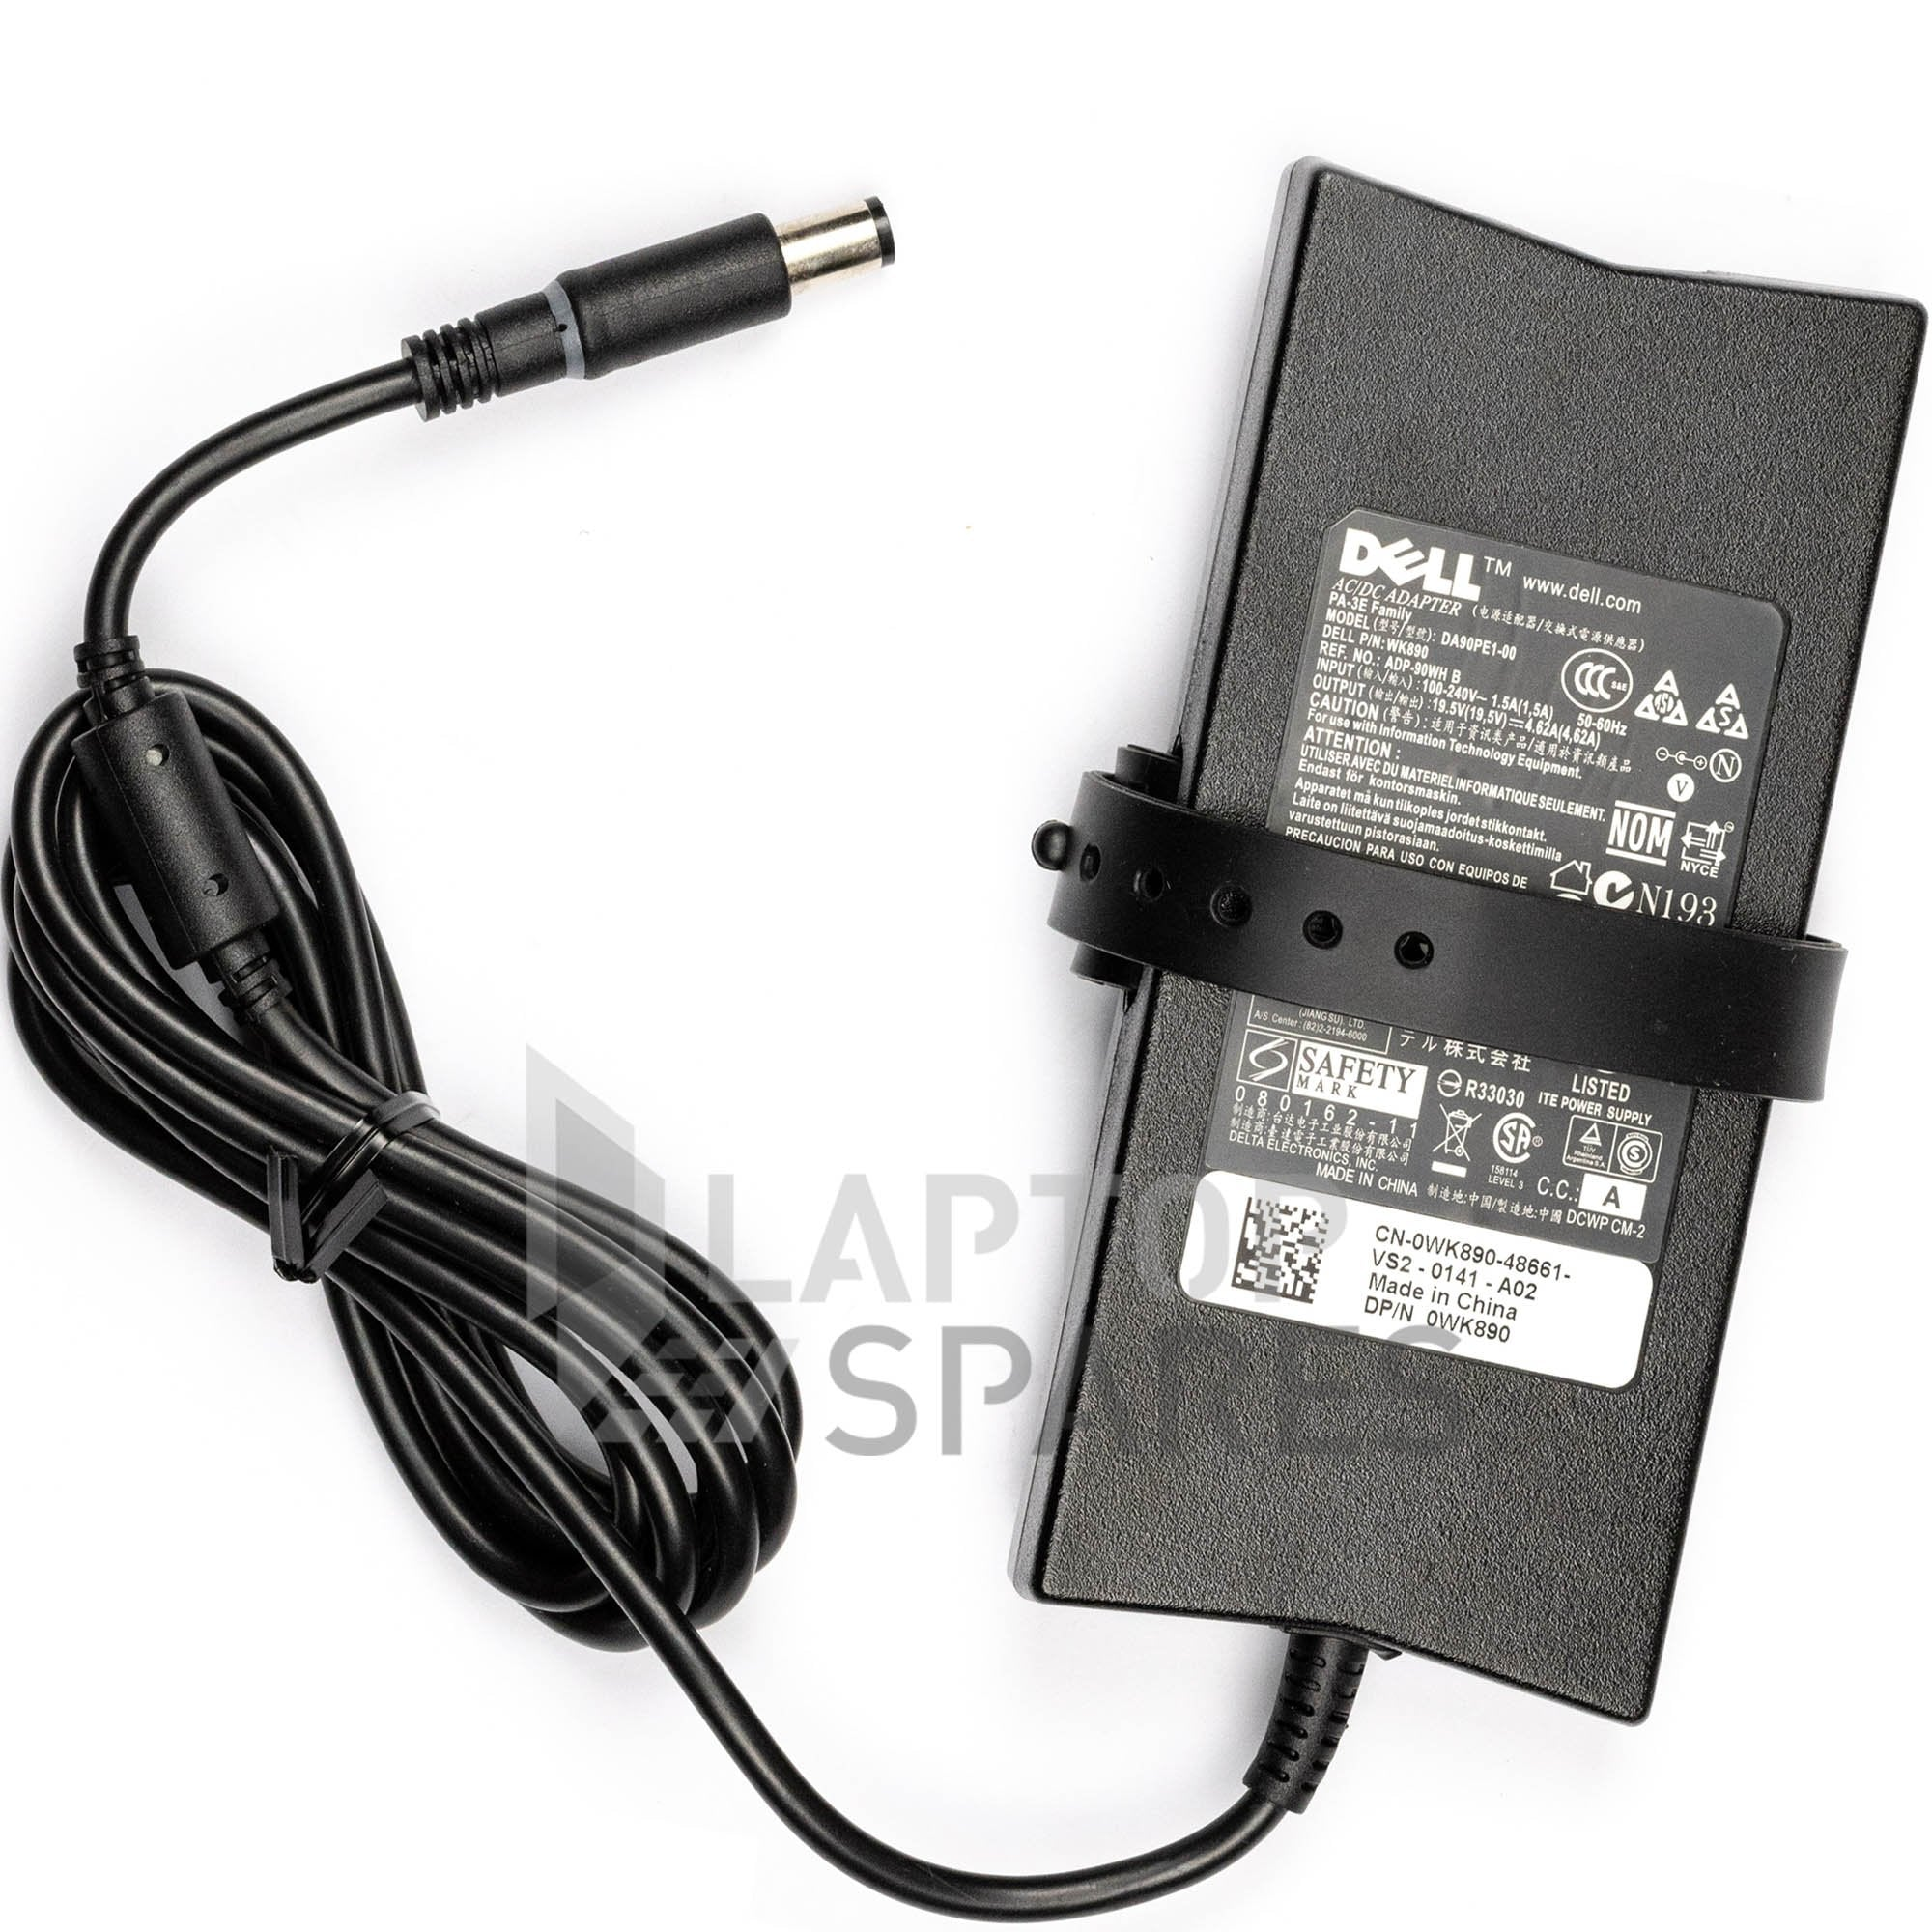 Dell Inspiron 3520 3521 3531 Laptop Slim AC Adapter Charger